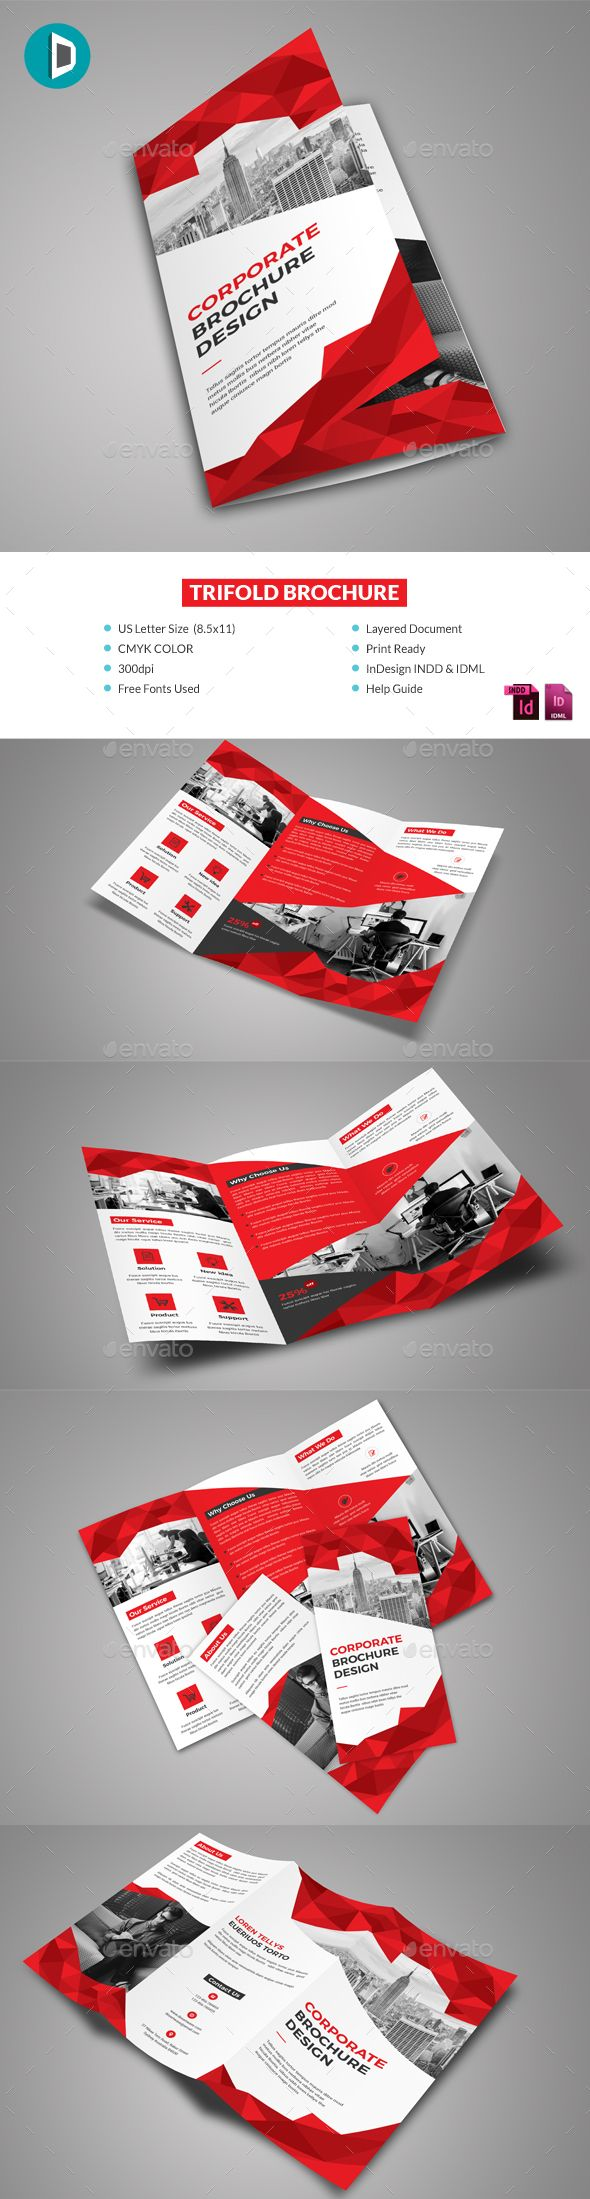 Template Formal Letter%0A Trifold Brochure